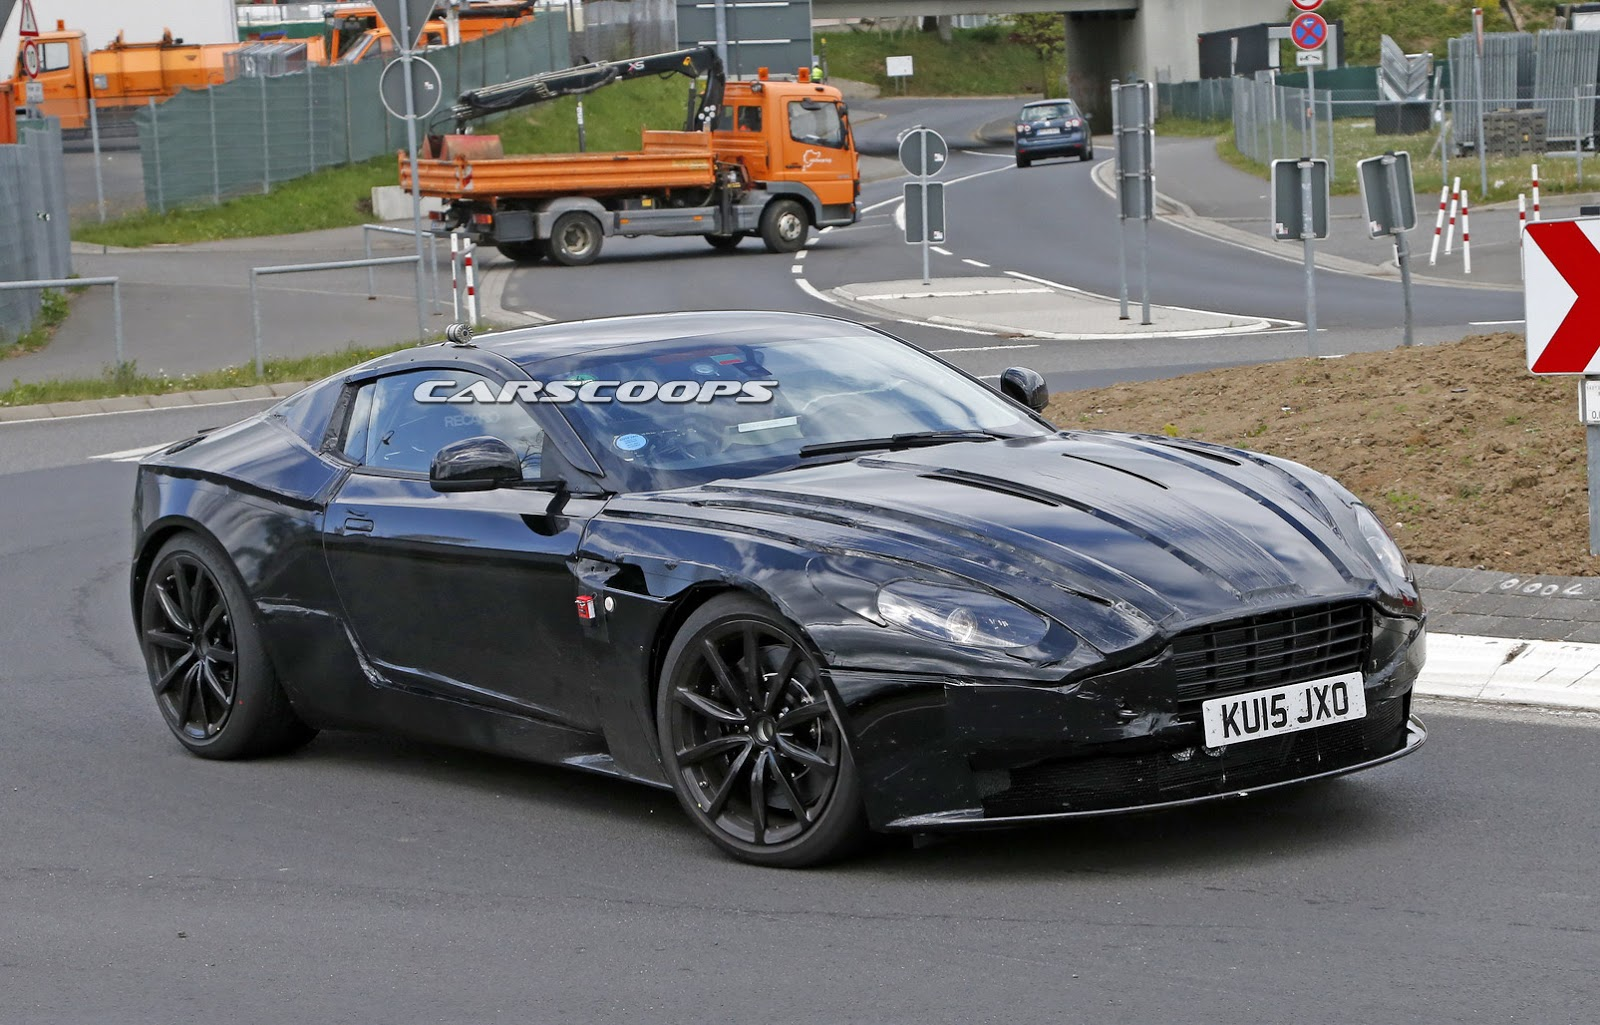 Aston Martin DB11 Tipped To Get 8 Speed Auto And Over 565 Hp